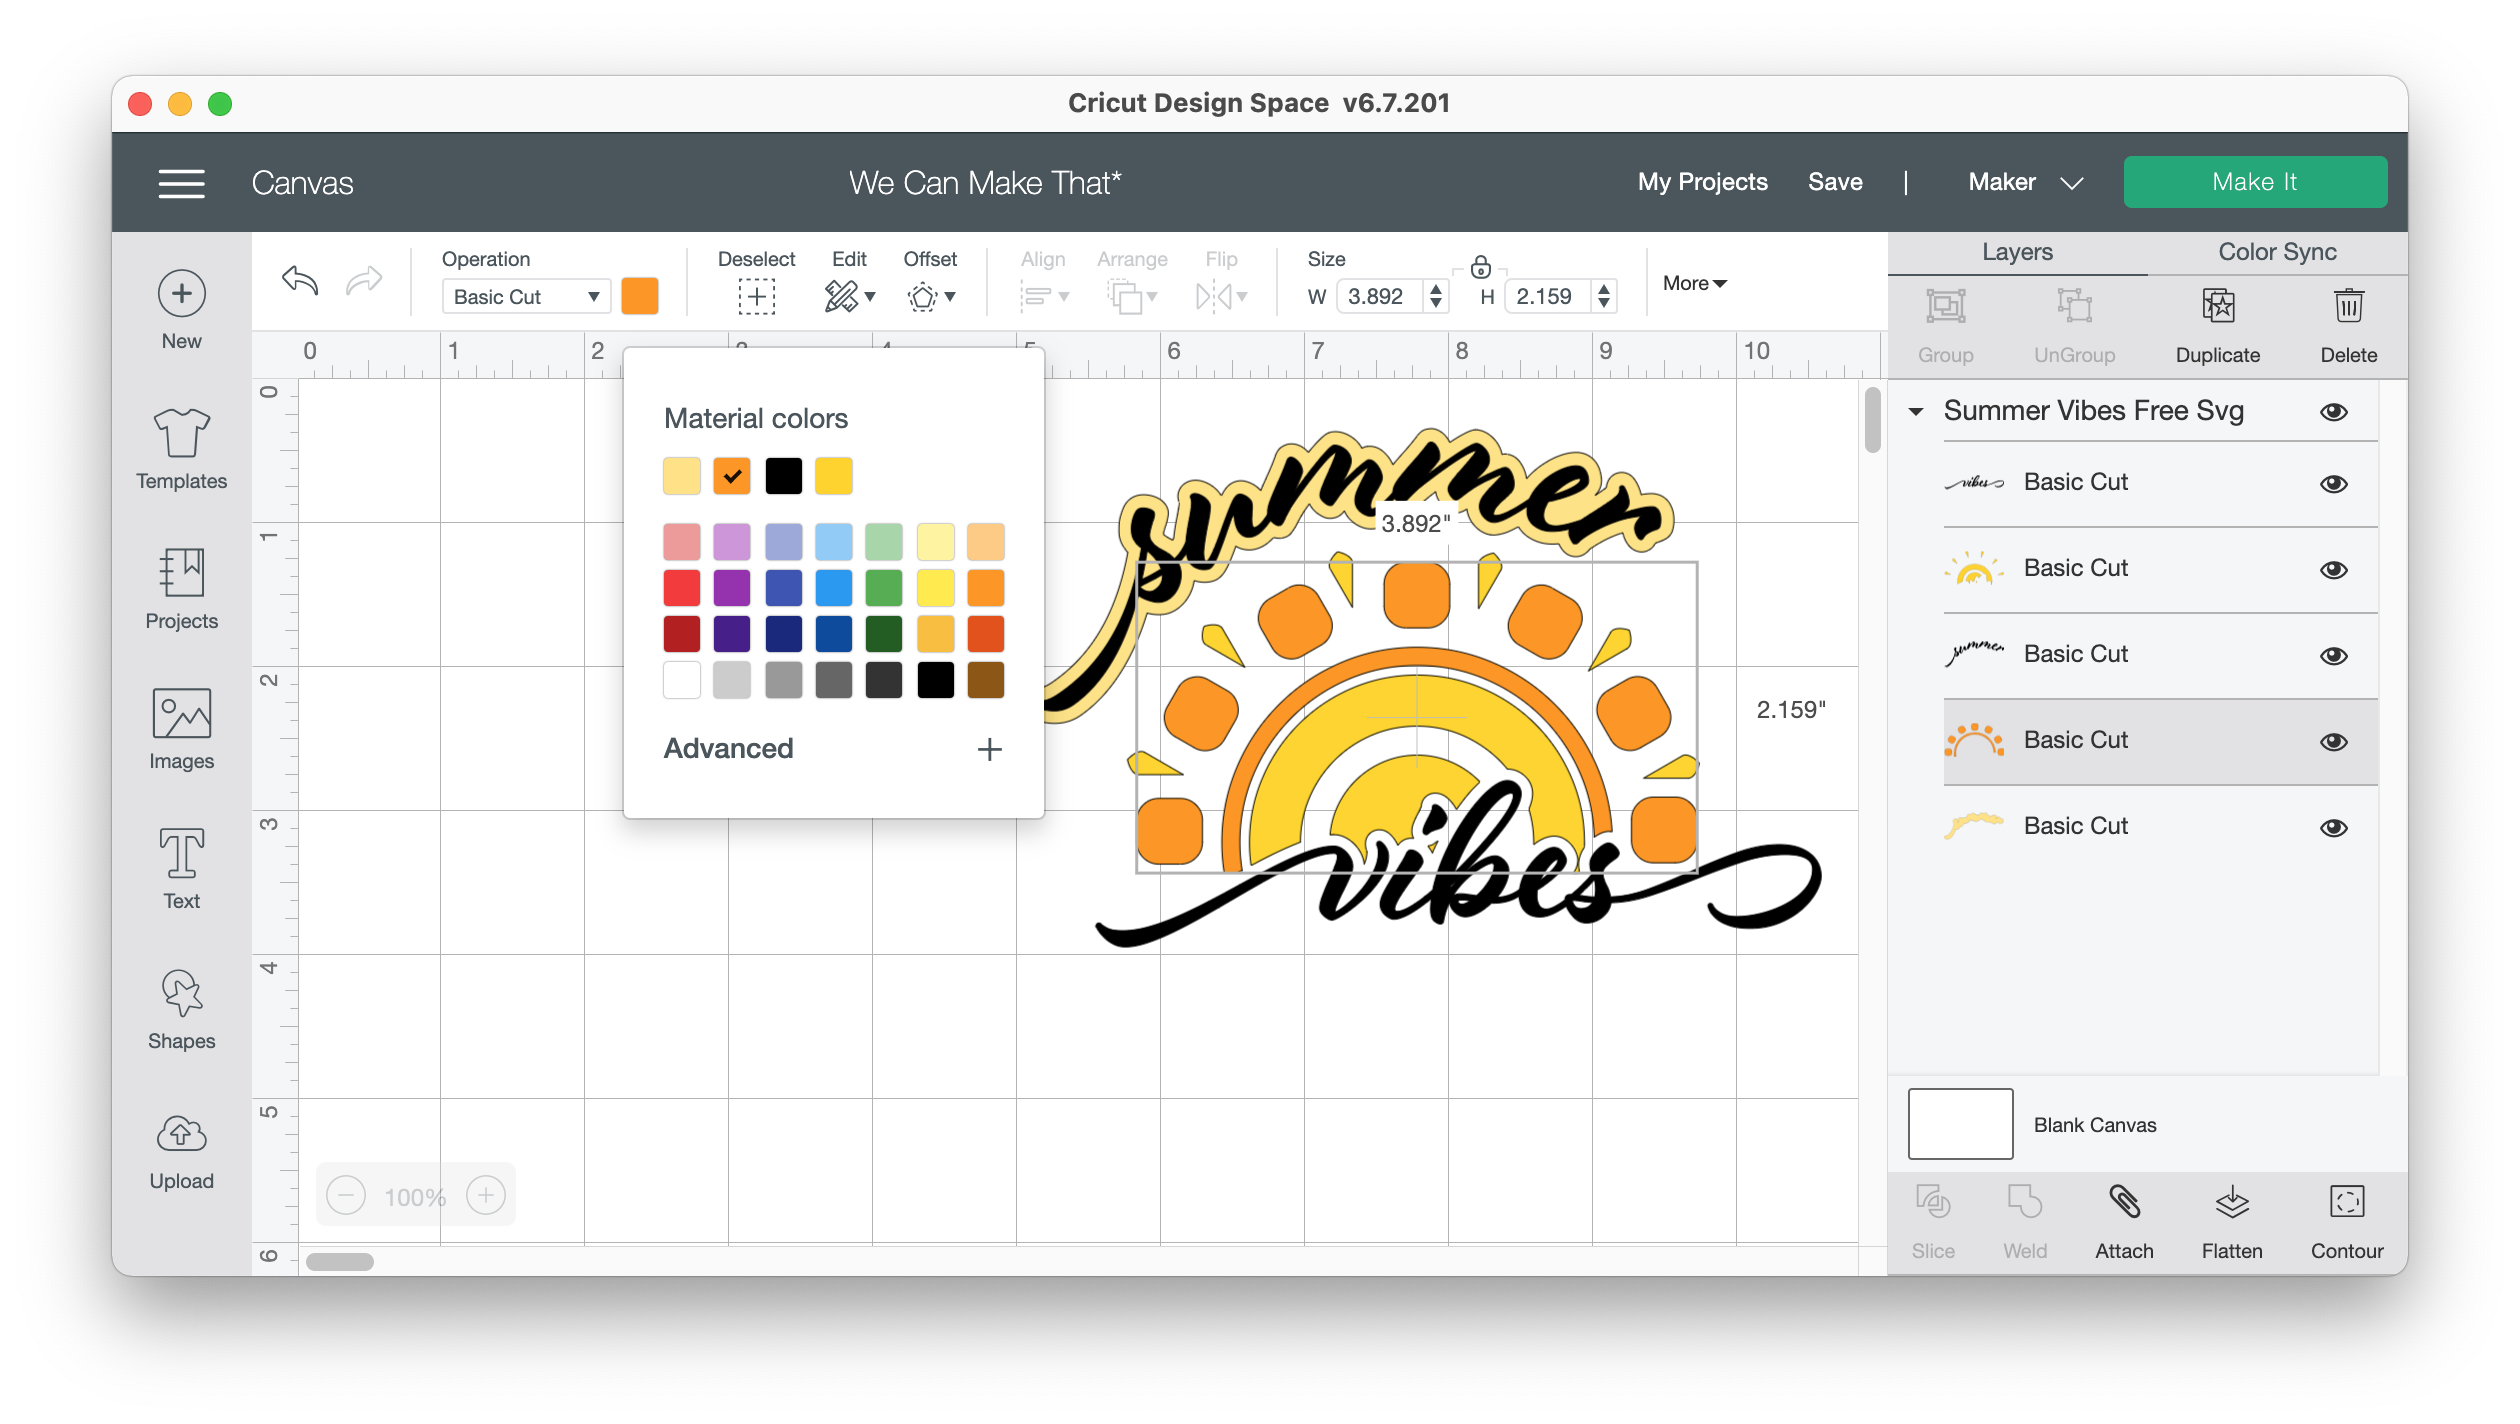 Changing colors on SVGs in Design Space